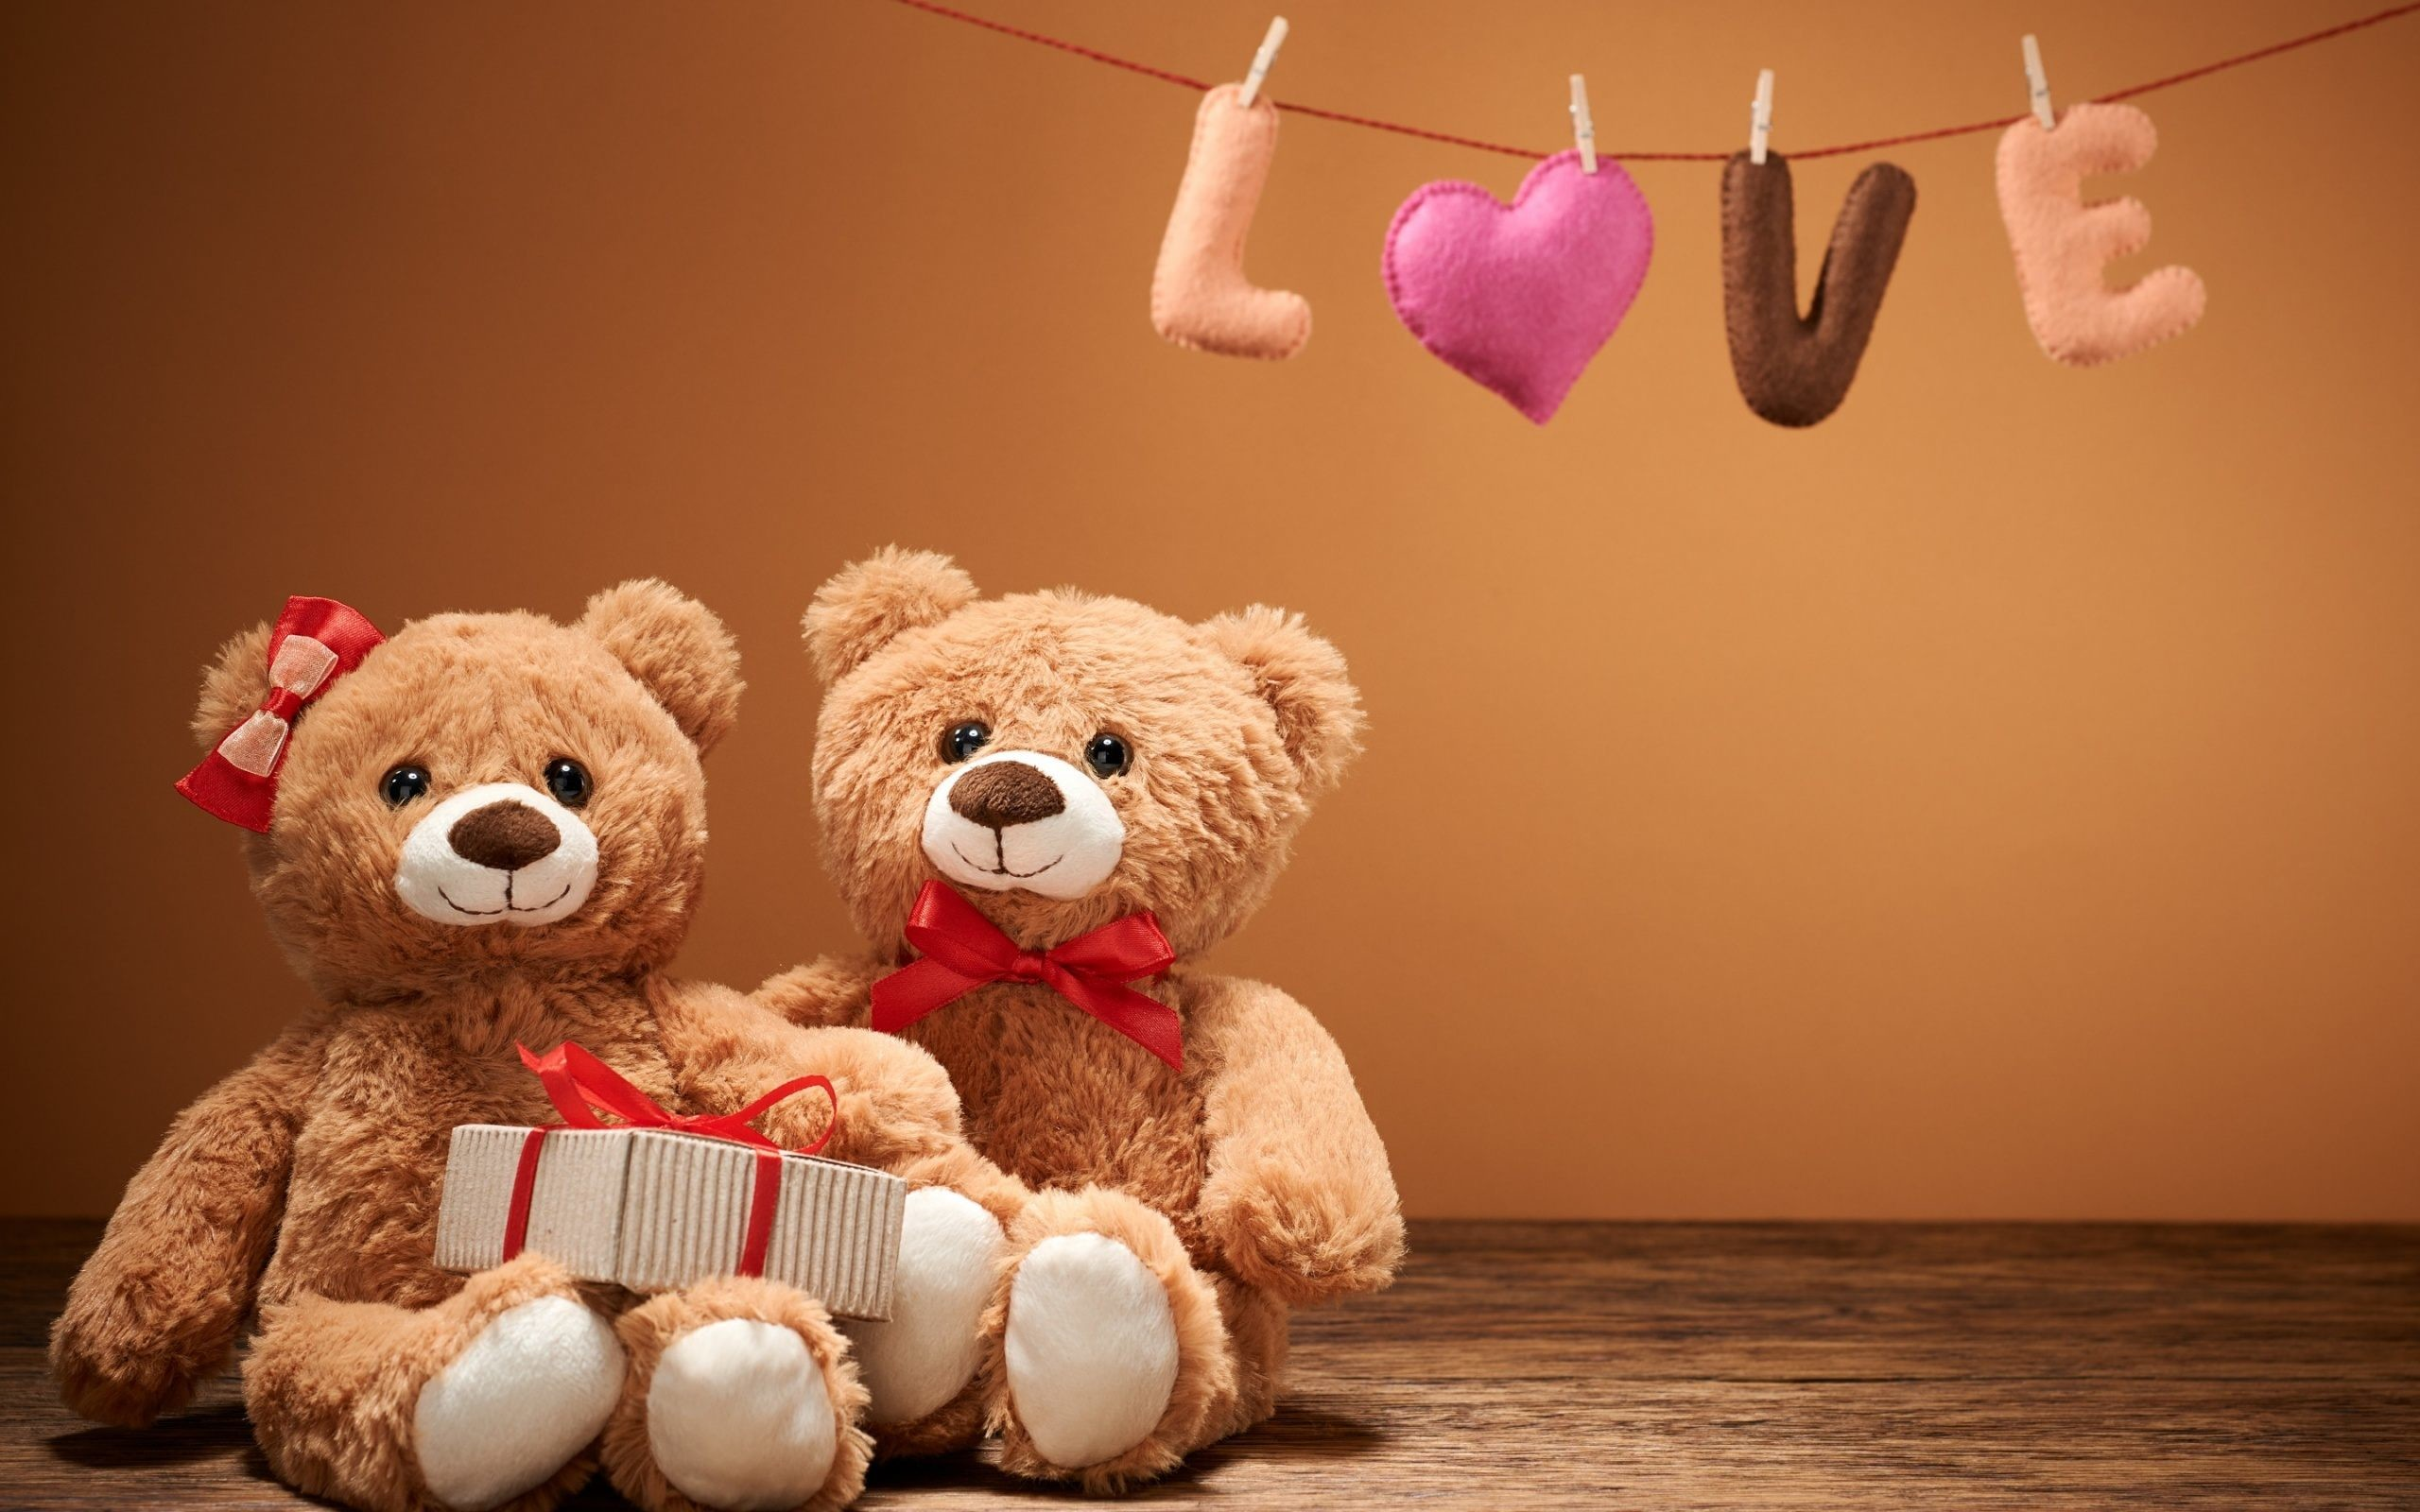 Buy Teddy Bear in Dubai as Gift